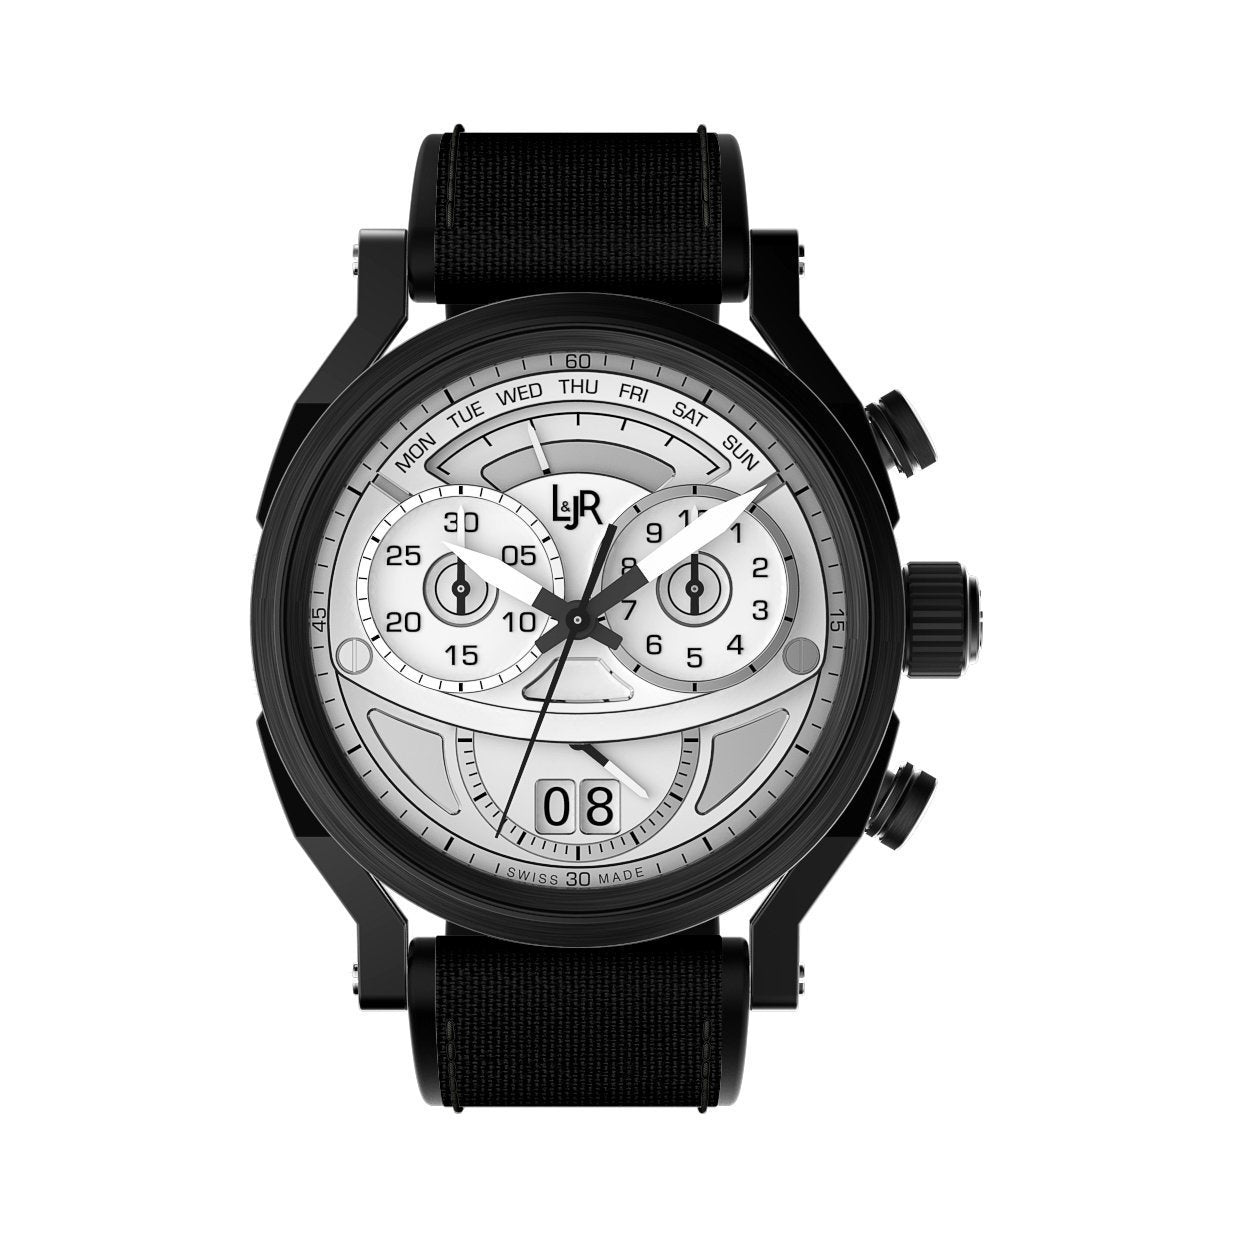 L&Jr Chronograph Day and Date Silver Nylon - Watches & Crystals